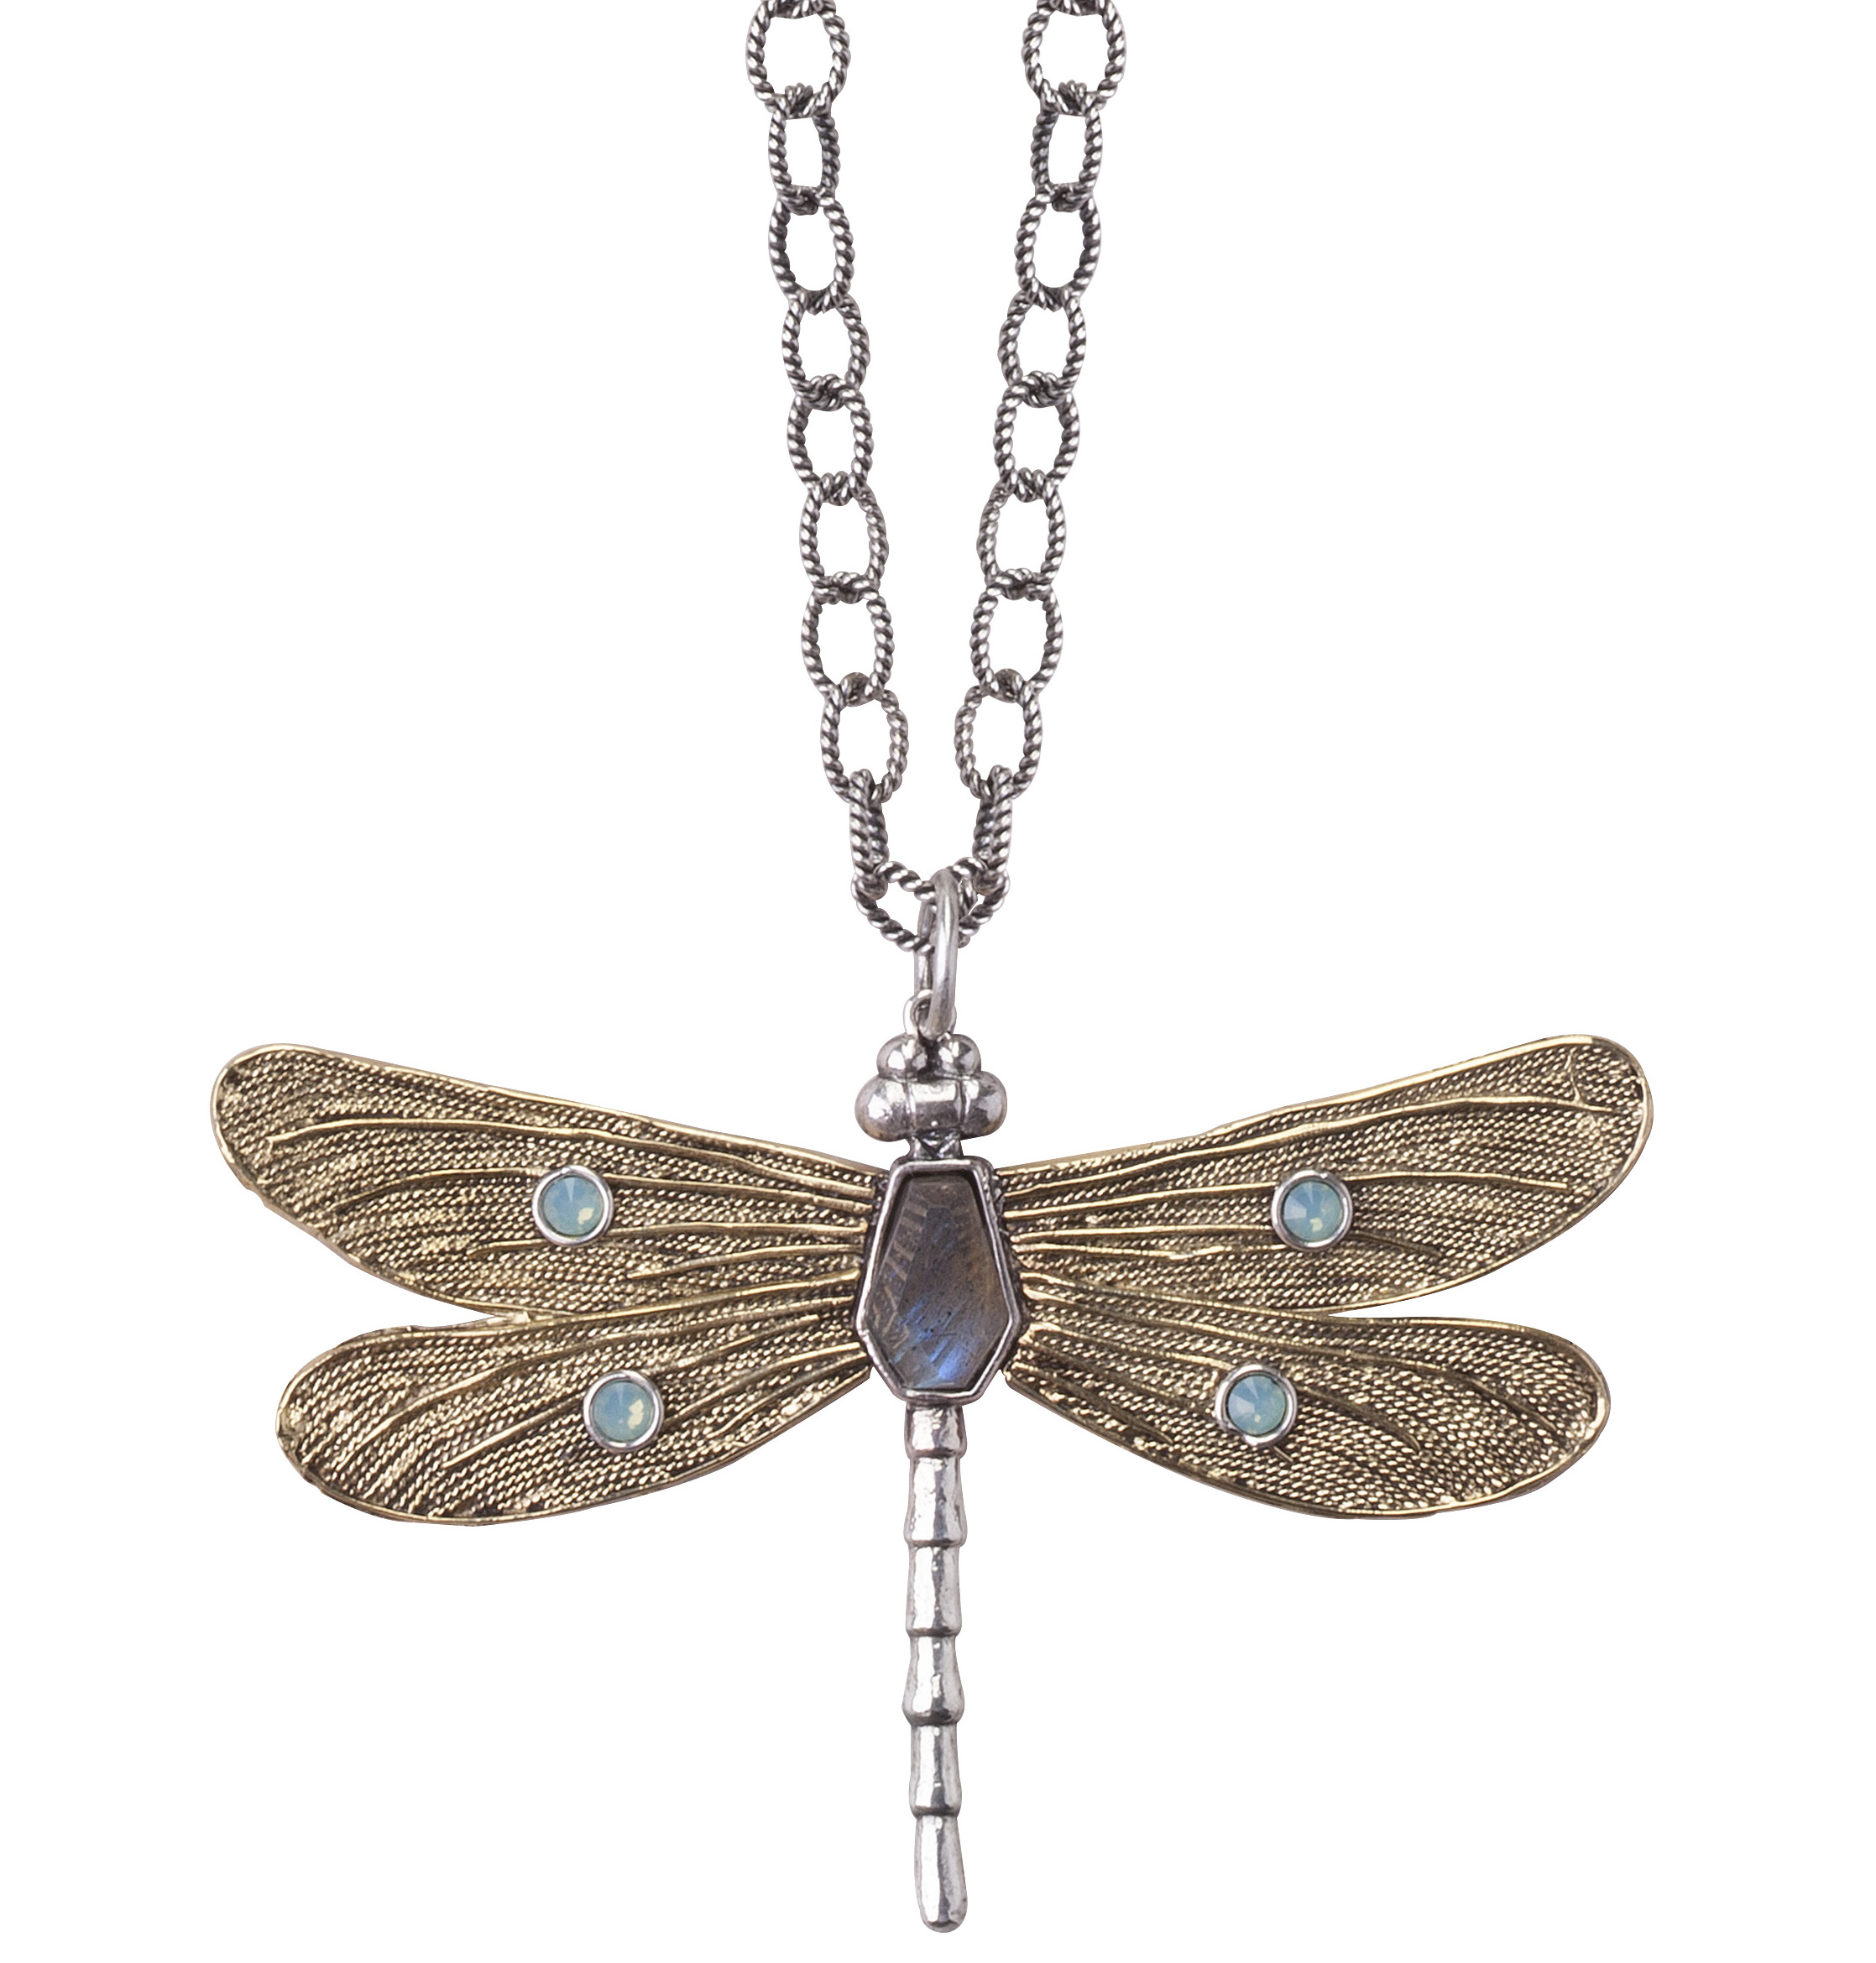 Waxing Poetic Transformative dragonfly pendant | JCK On Your Market